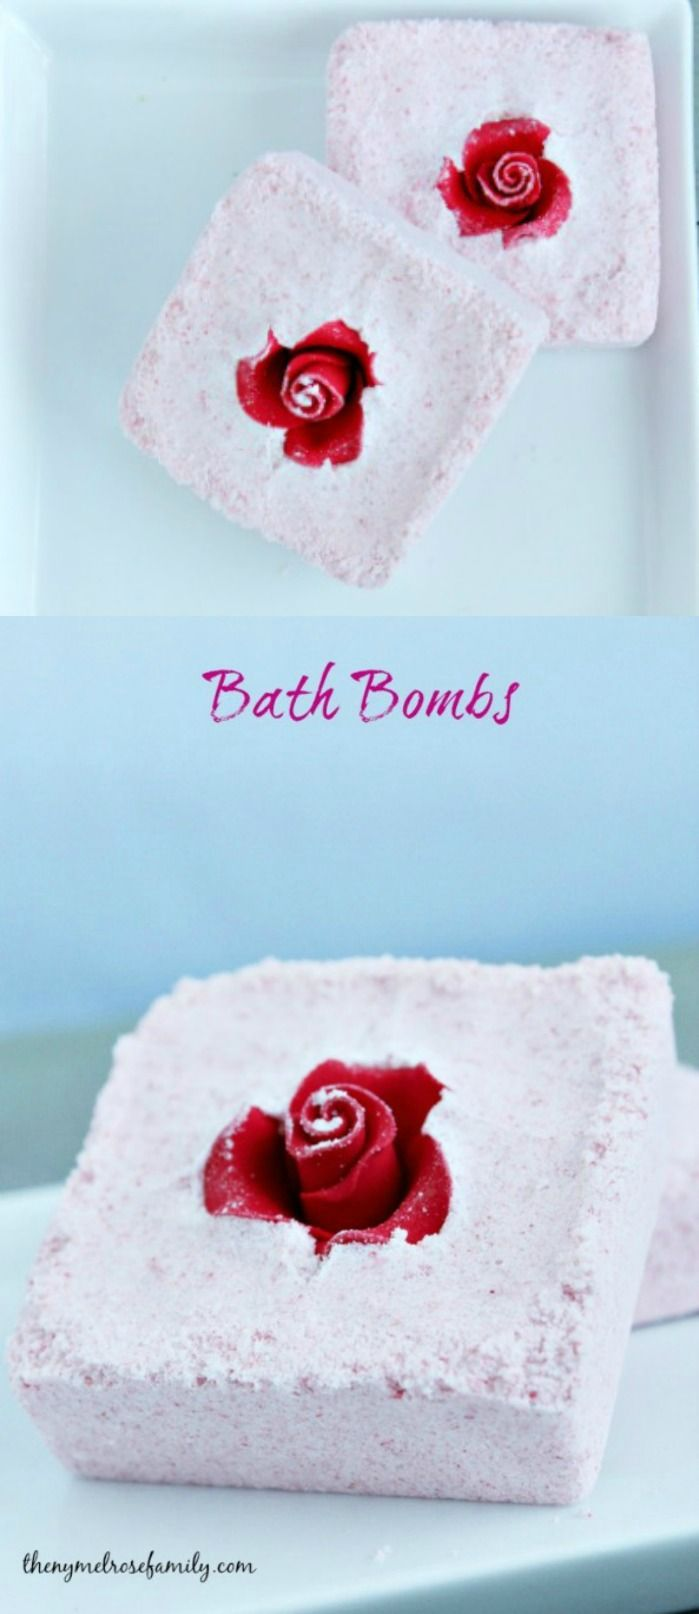 Beautiful Bath Bombs that are stunning and a perfect gift idea.